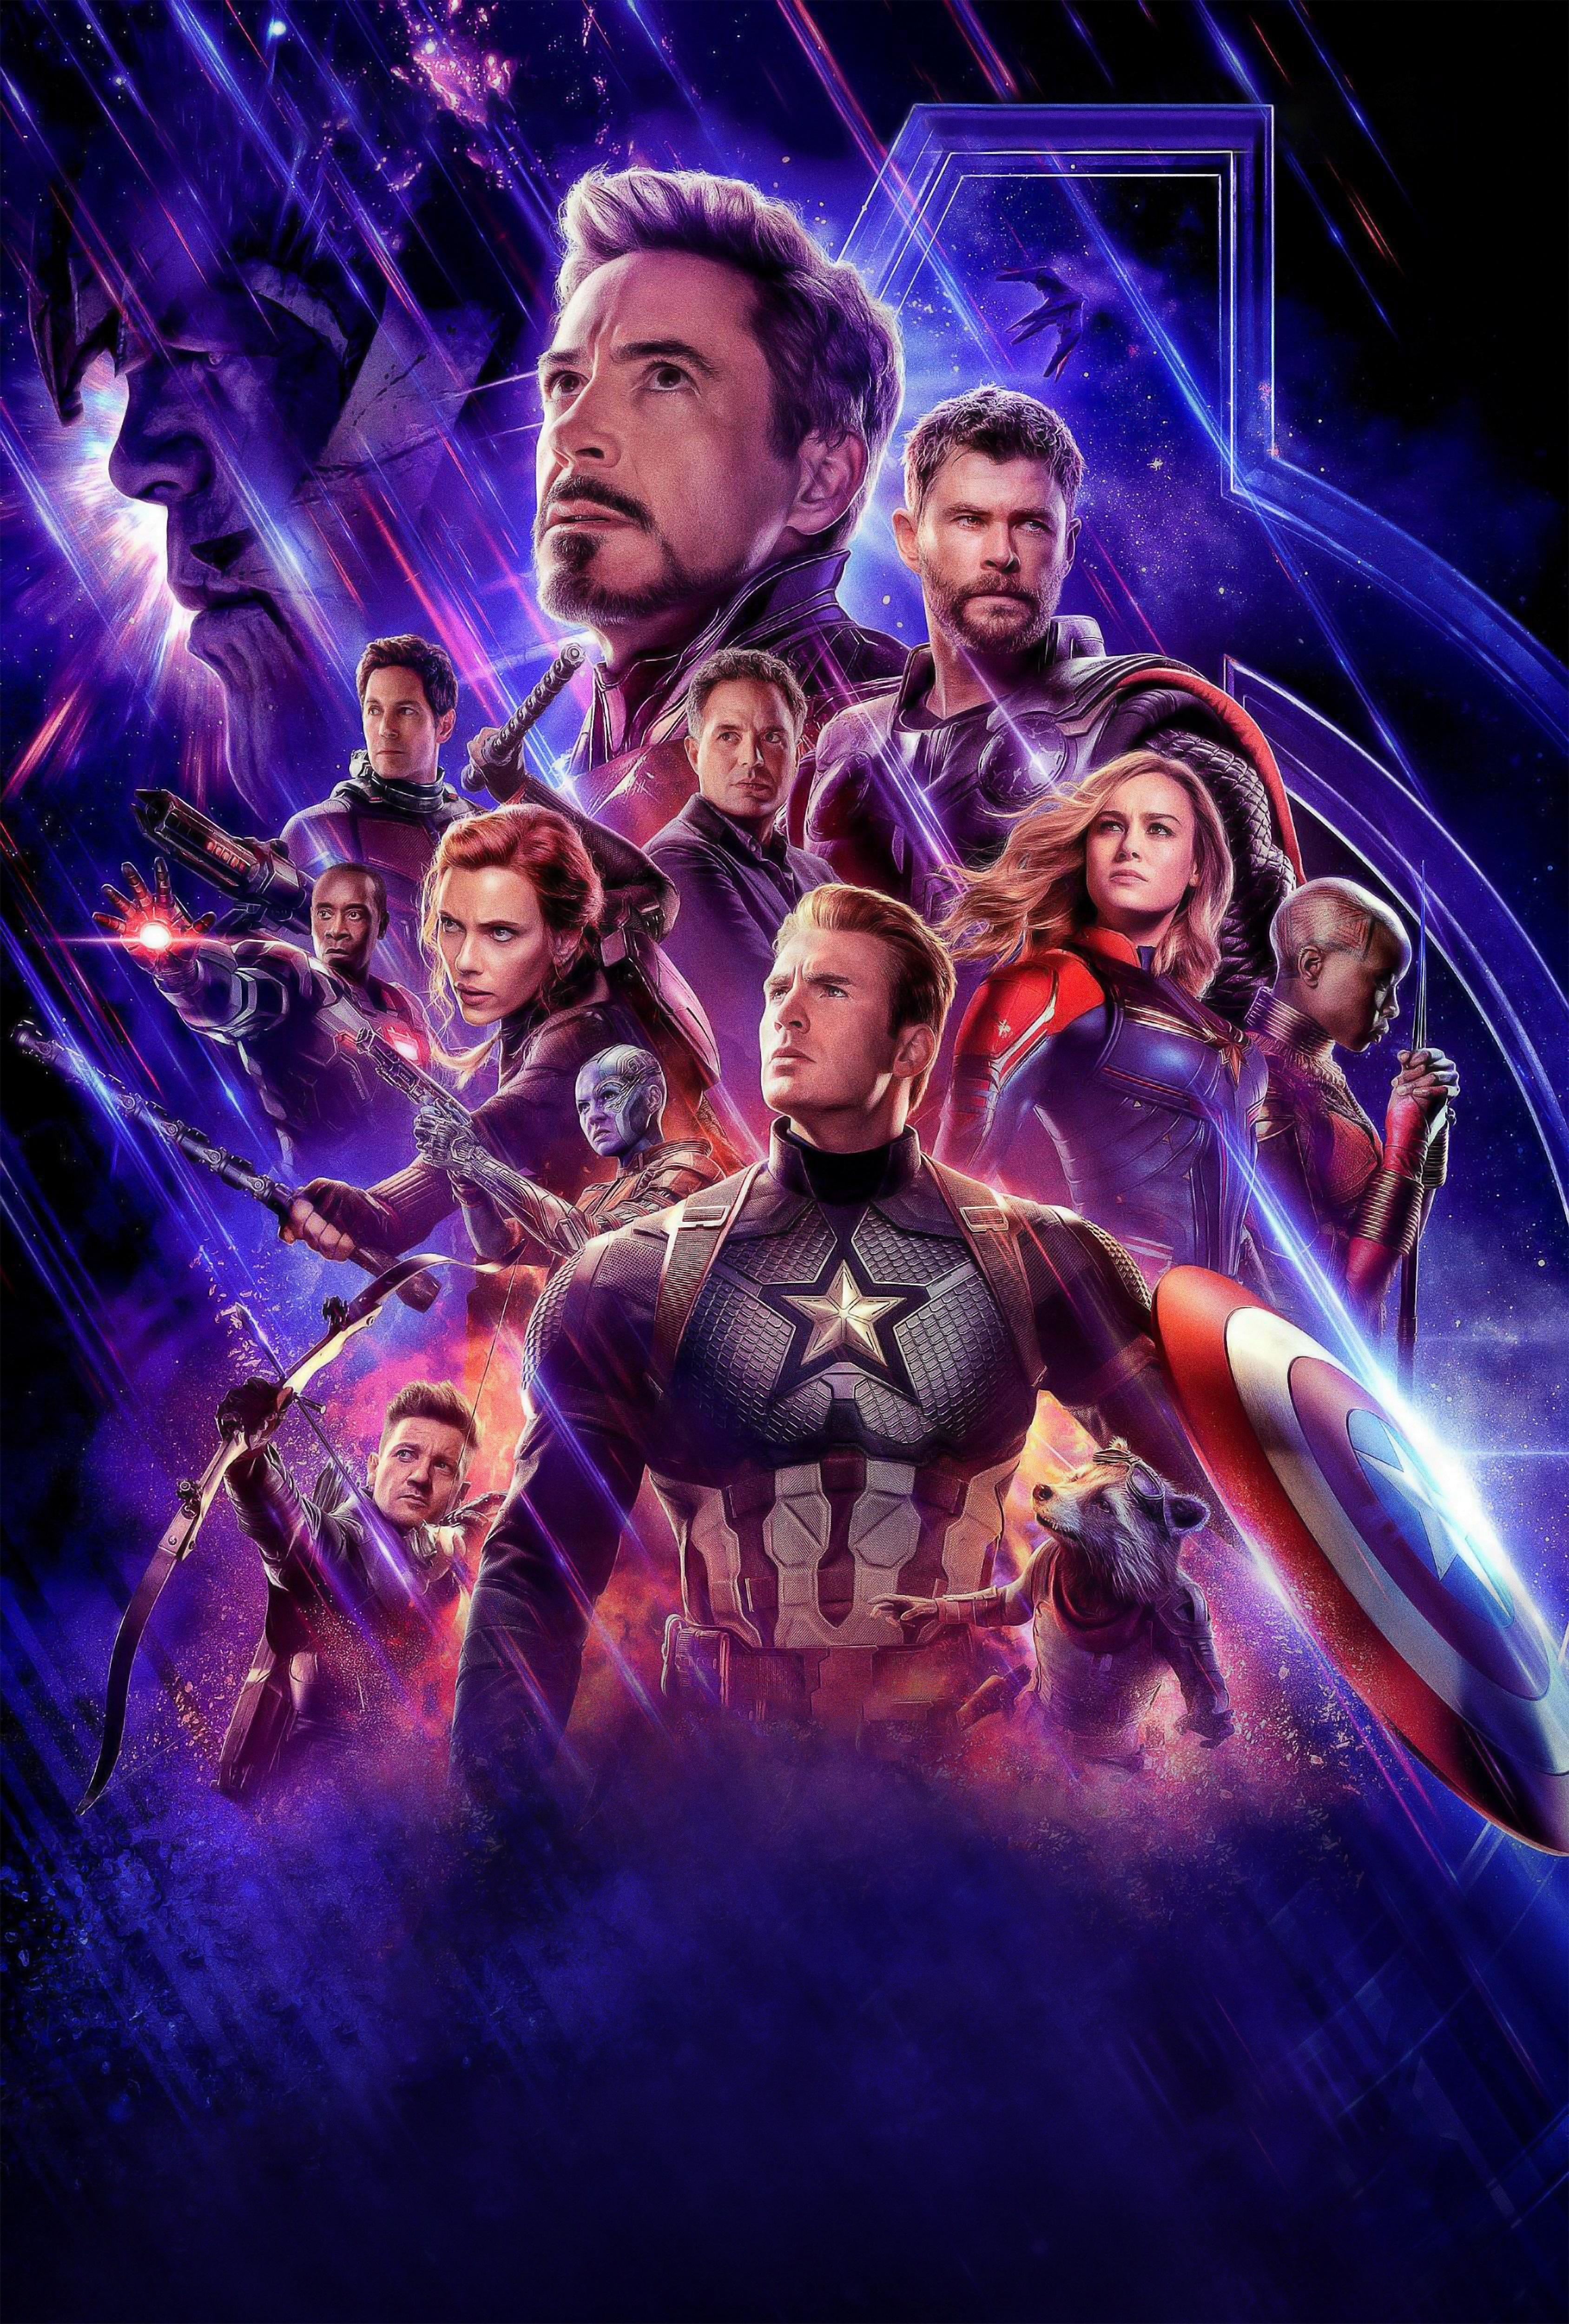 Poster Of Avengers Endgame Movie Wallpaper Hd Movies 4k Wallpapers